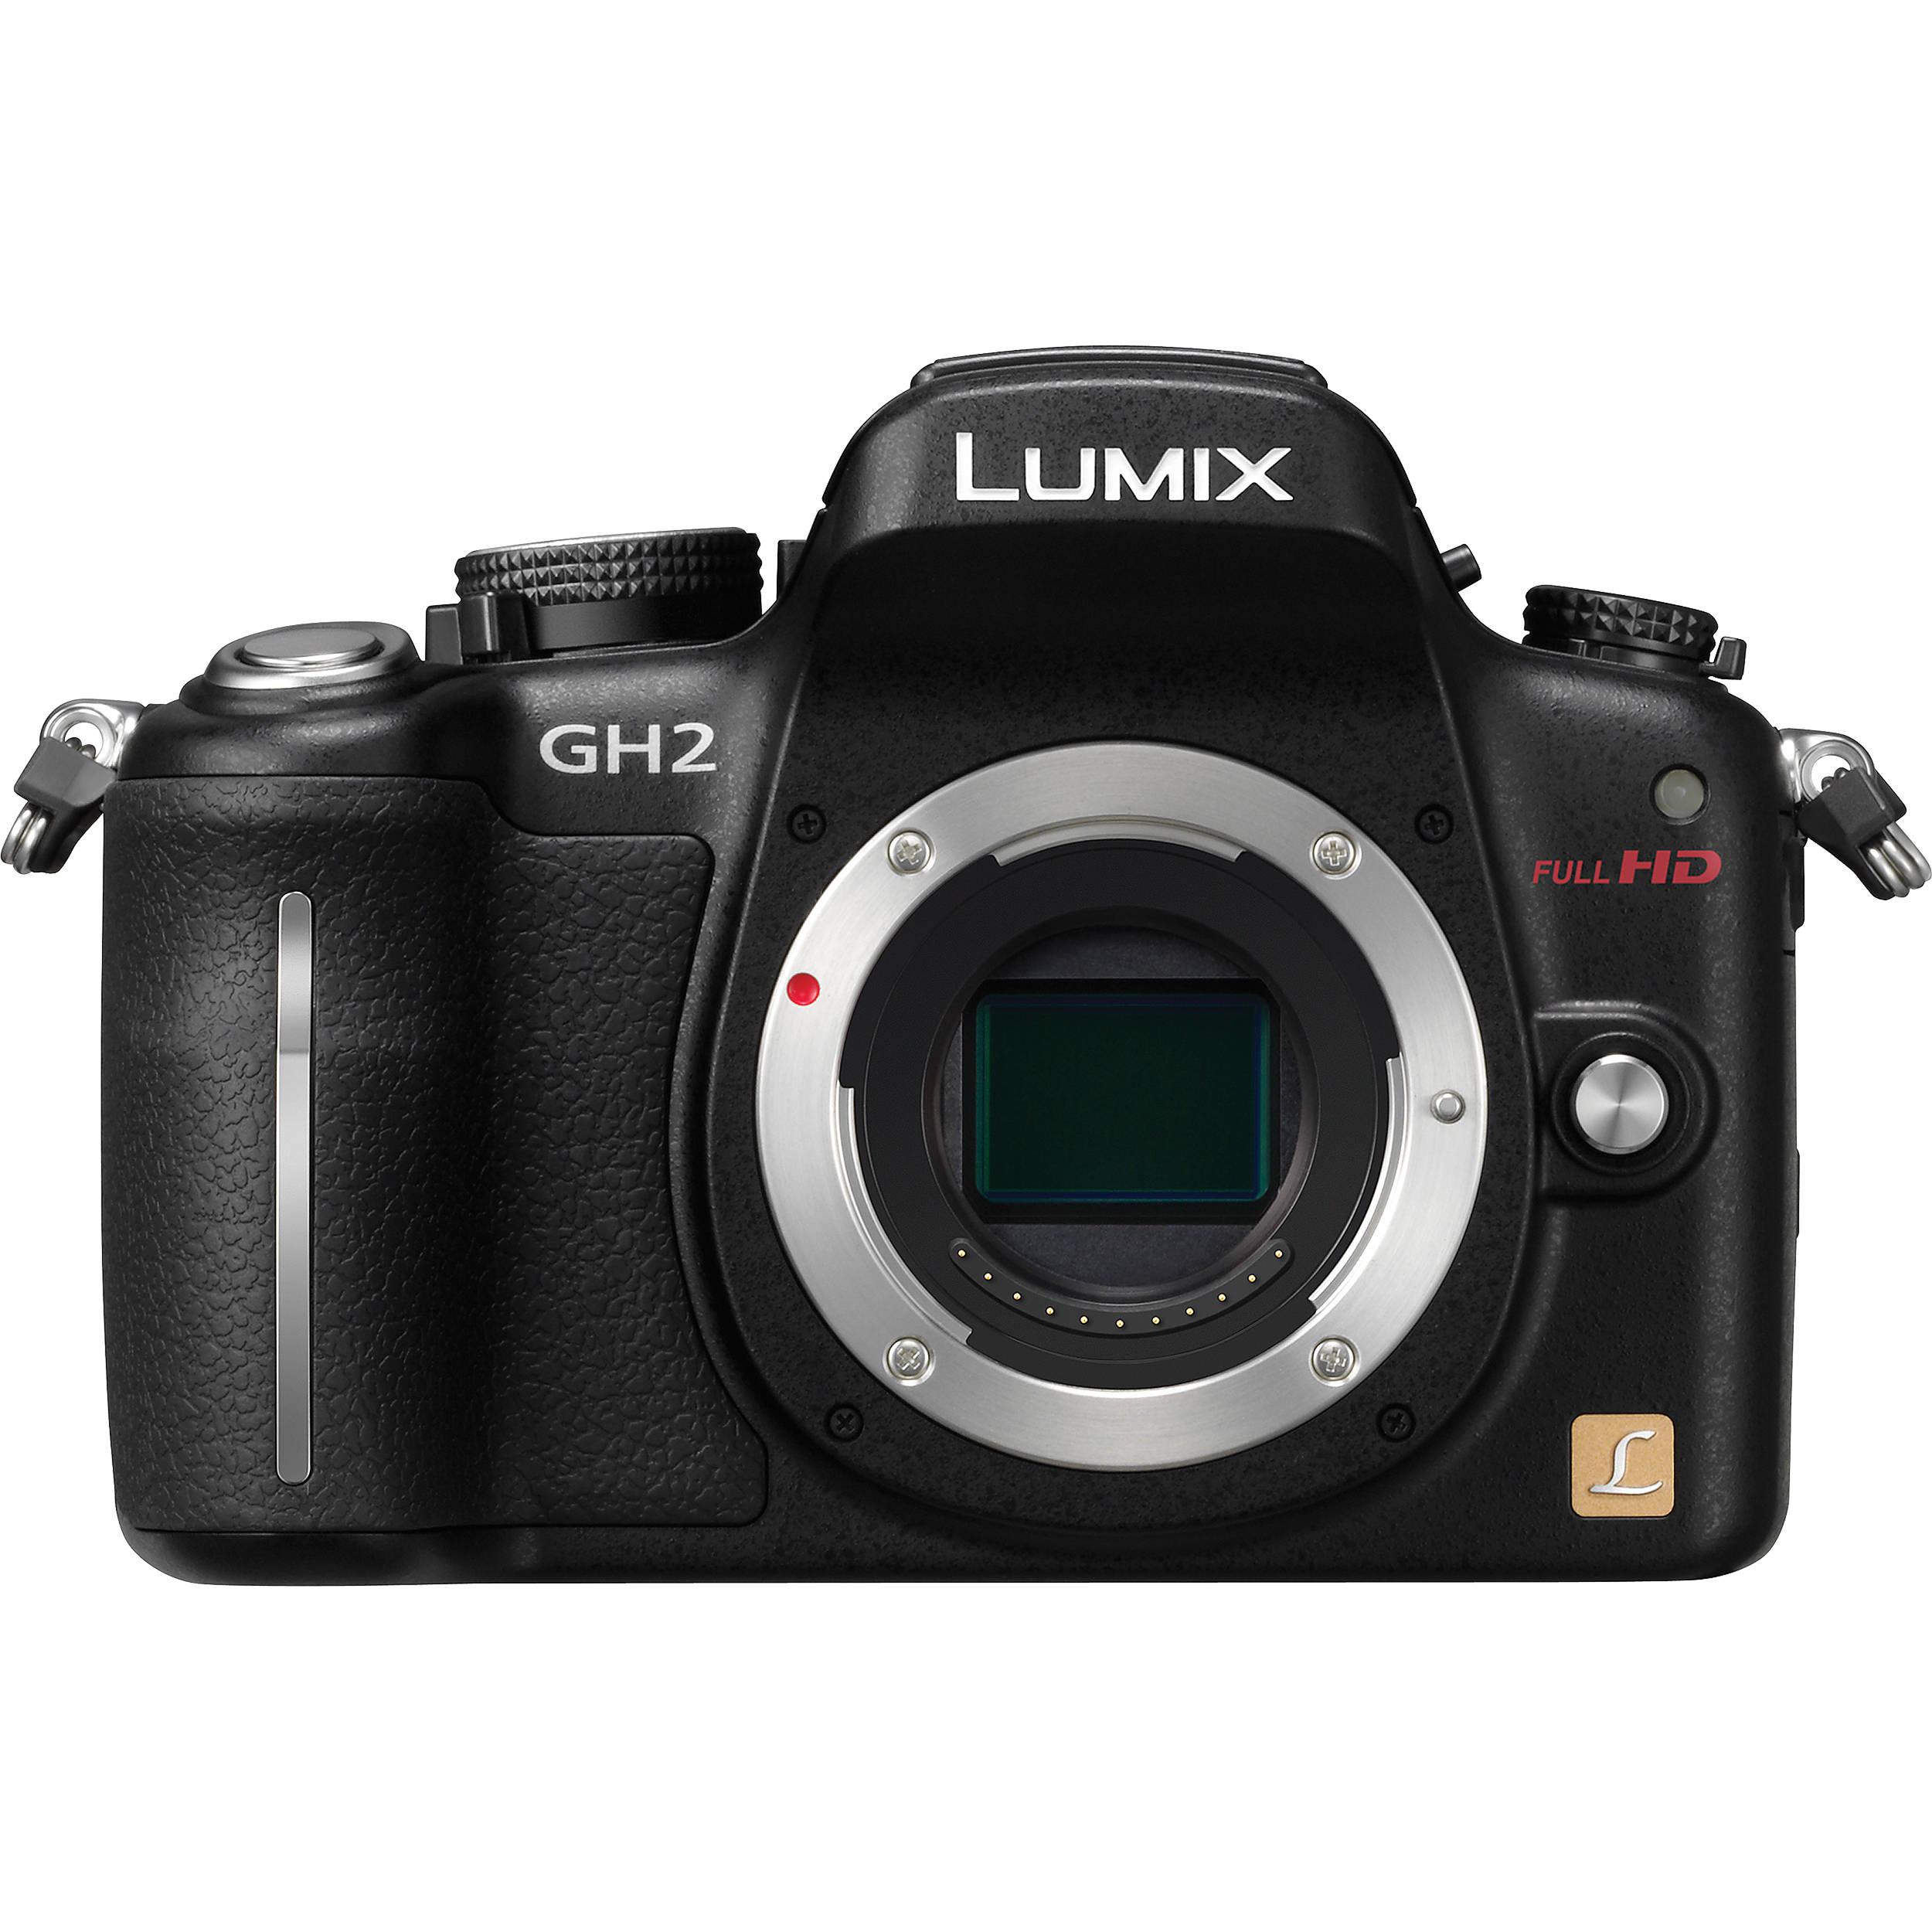 Used Panasonic Lumix DMC-GH2 Mirrorless Micro Four DMC ...: https://www.bhphotovideo.com/c/product/801559000-USE/panasonic_dmc_gh2k_lumix_dmc_gh2_mirrorless_micro.html